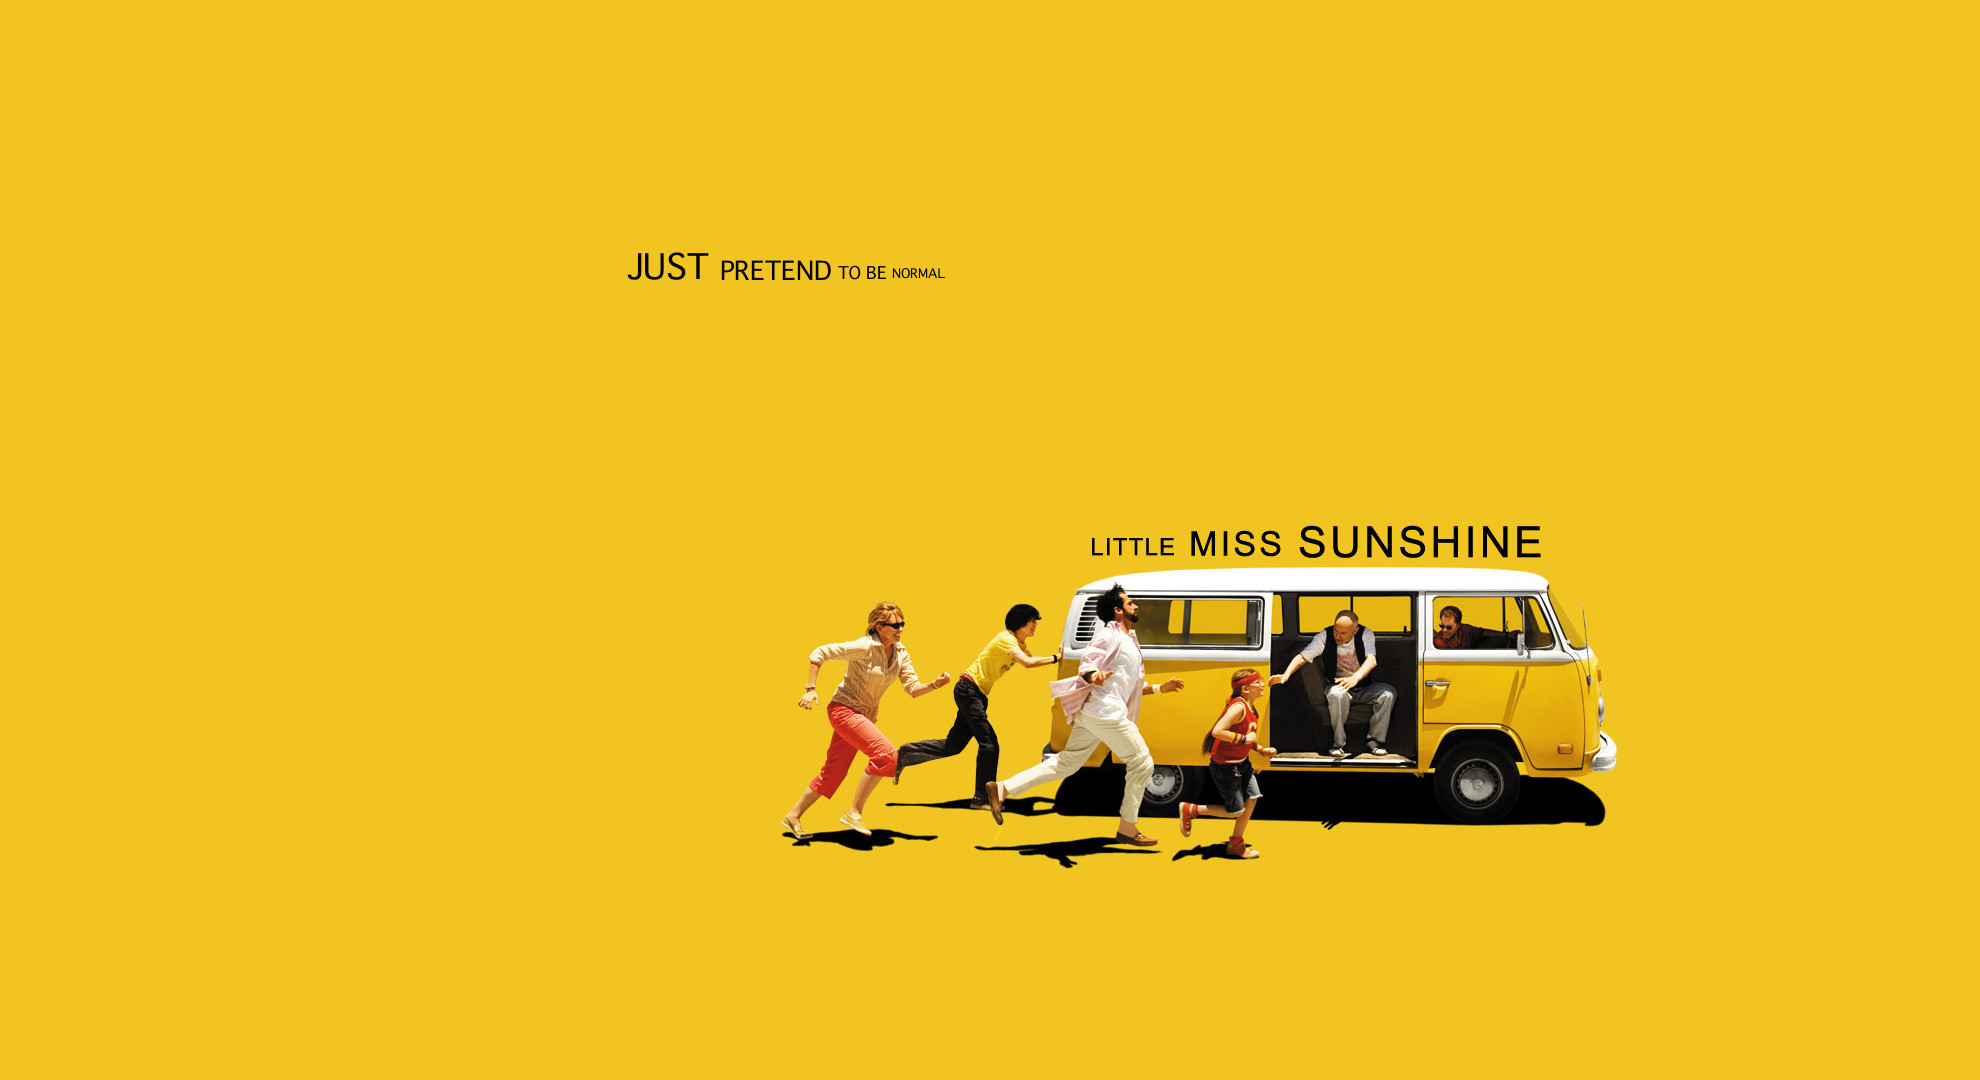 1980x1080 Movie - Little Miss Sunshine Humor Funny Cute Yellow Wallpaper